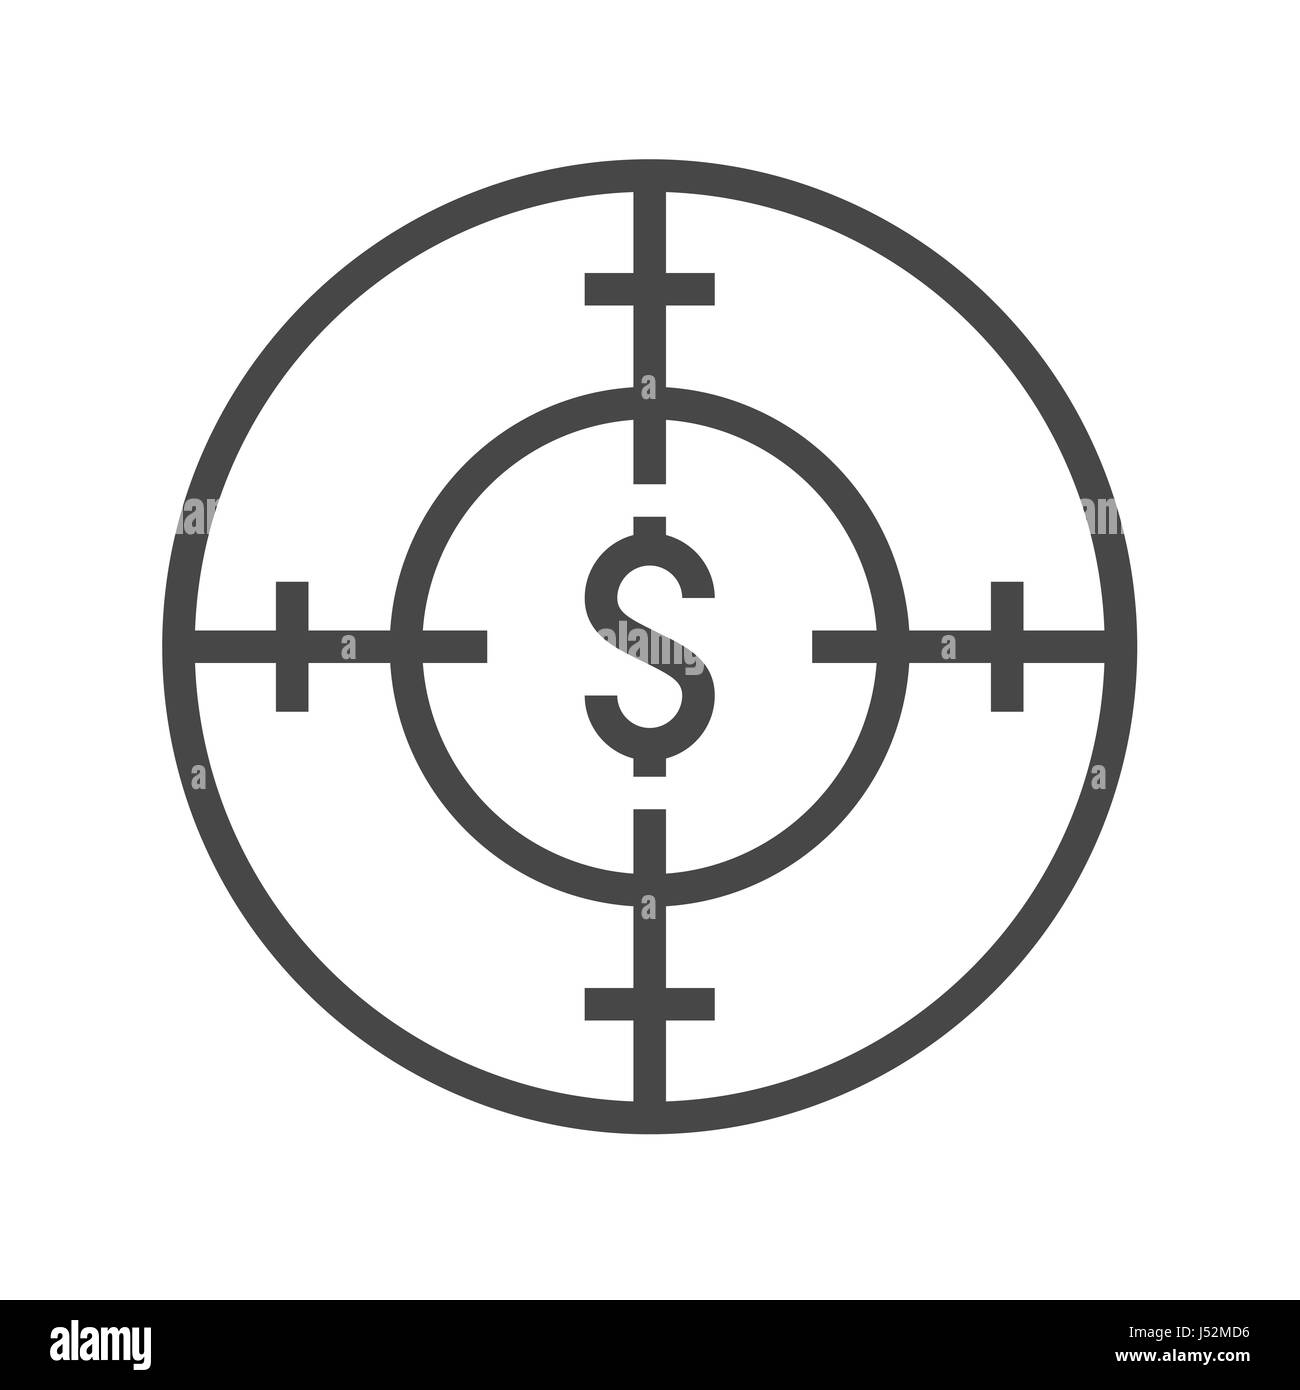 Funds Hunting Thin Line Vector Icon. Flat icon isolated on the white background. Editable EPS file. Vector illustration. - Stock Image